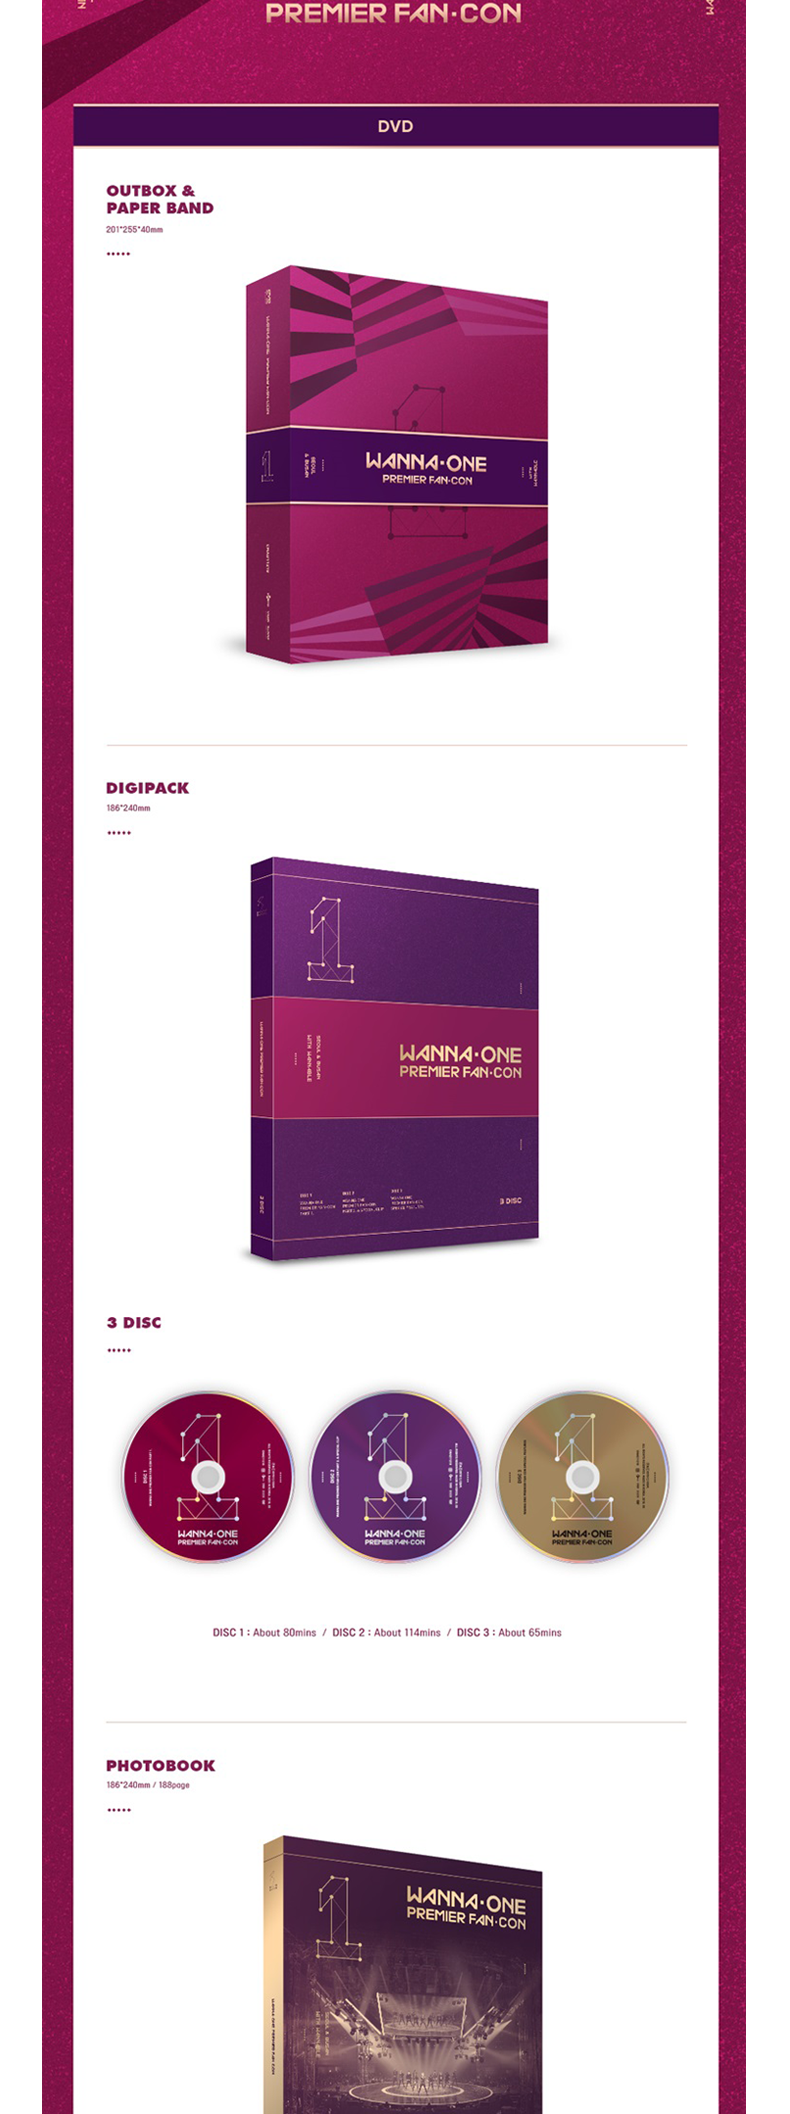 [SET][DVD + Blu-Ray + 1POSTER SET] WANNA ONE - WANNA ONE PREMIER FAN-CON DVD + Blu-Ray